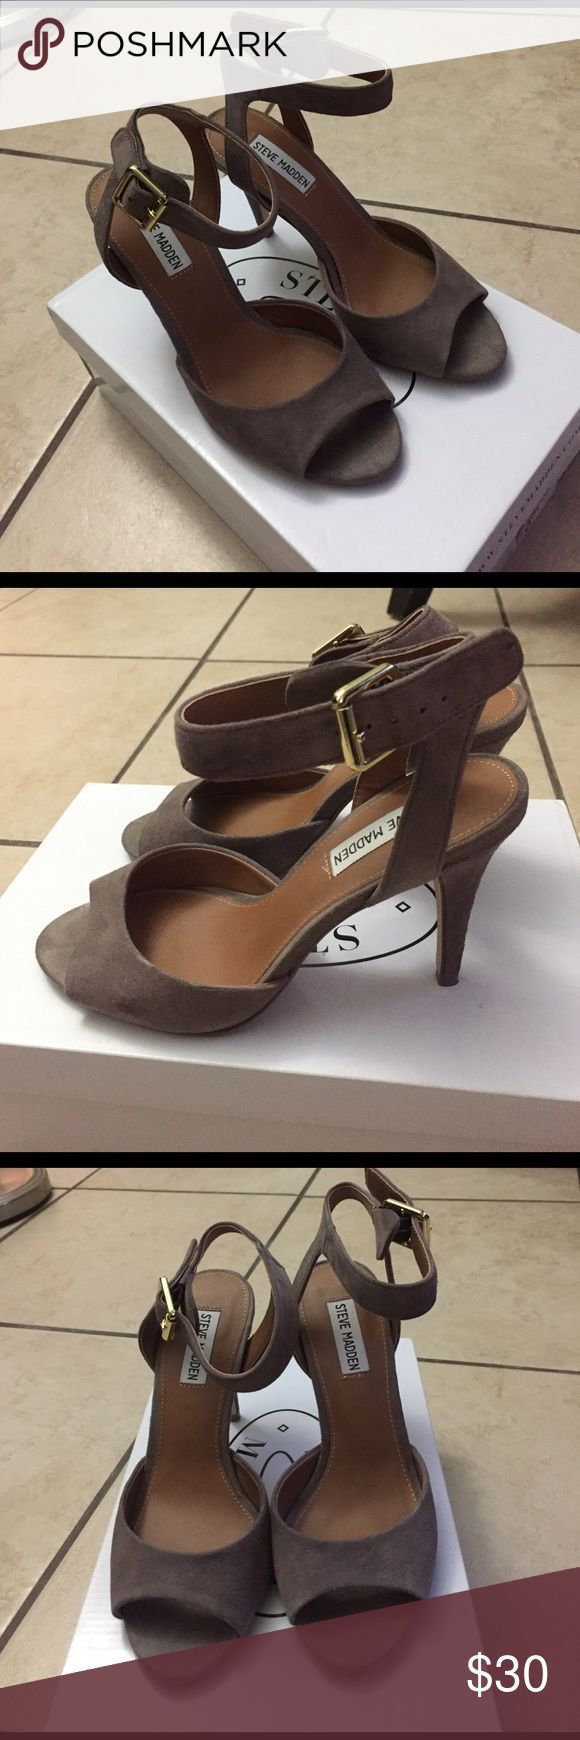 Steve Madden heels Suede. Size 7 but runs a little smaller. Can fit 6.5. In great condition! Stored in box with paper wrapping Steve Madden Shoes Heels